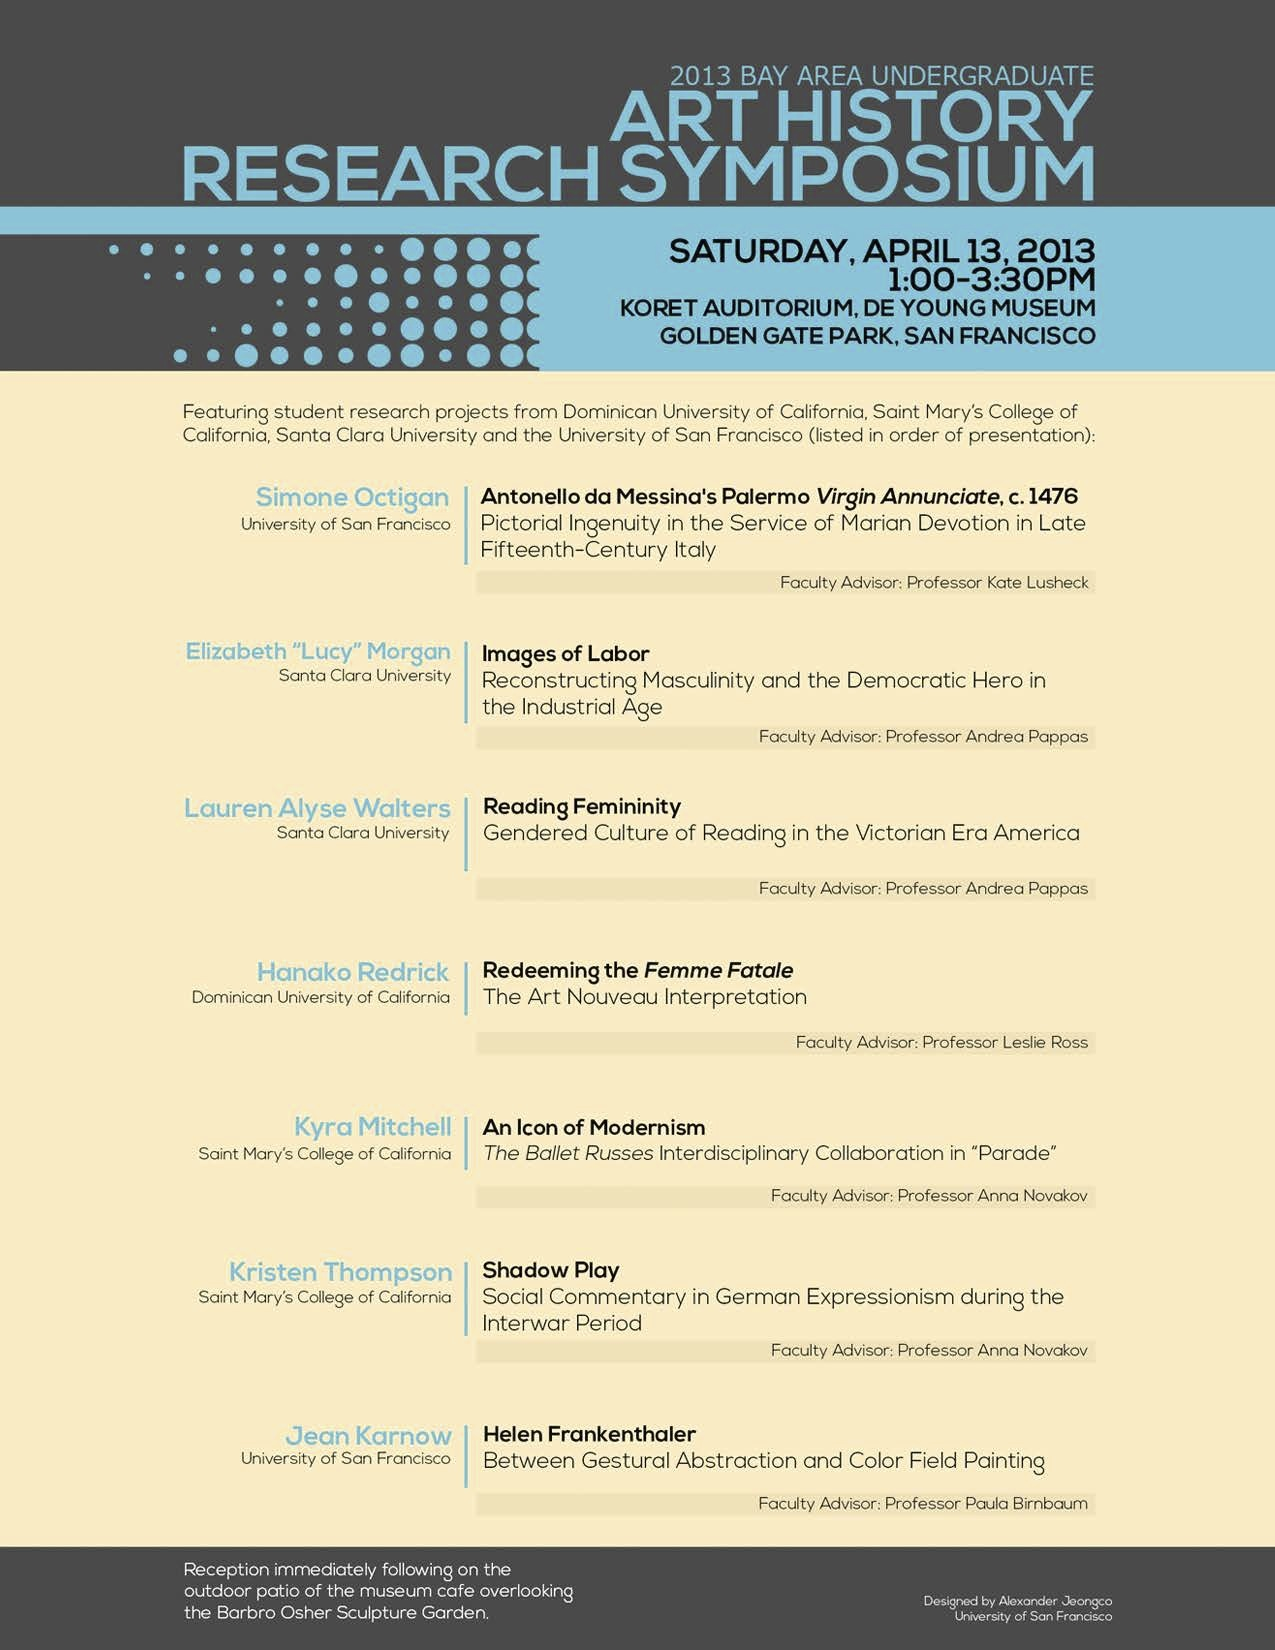 Fourth Annual Bay Area Undergraduate Art History Research Symposium